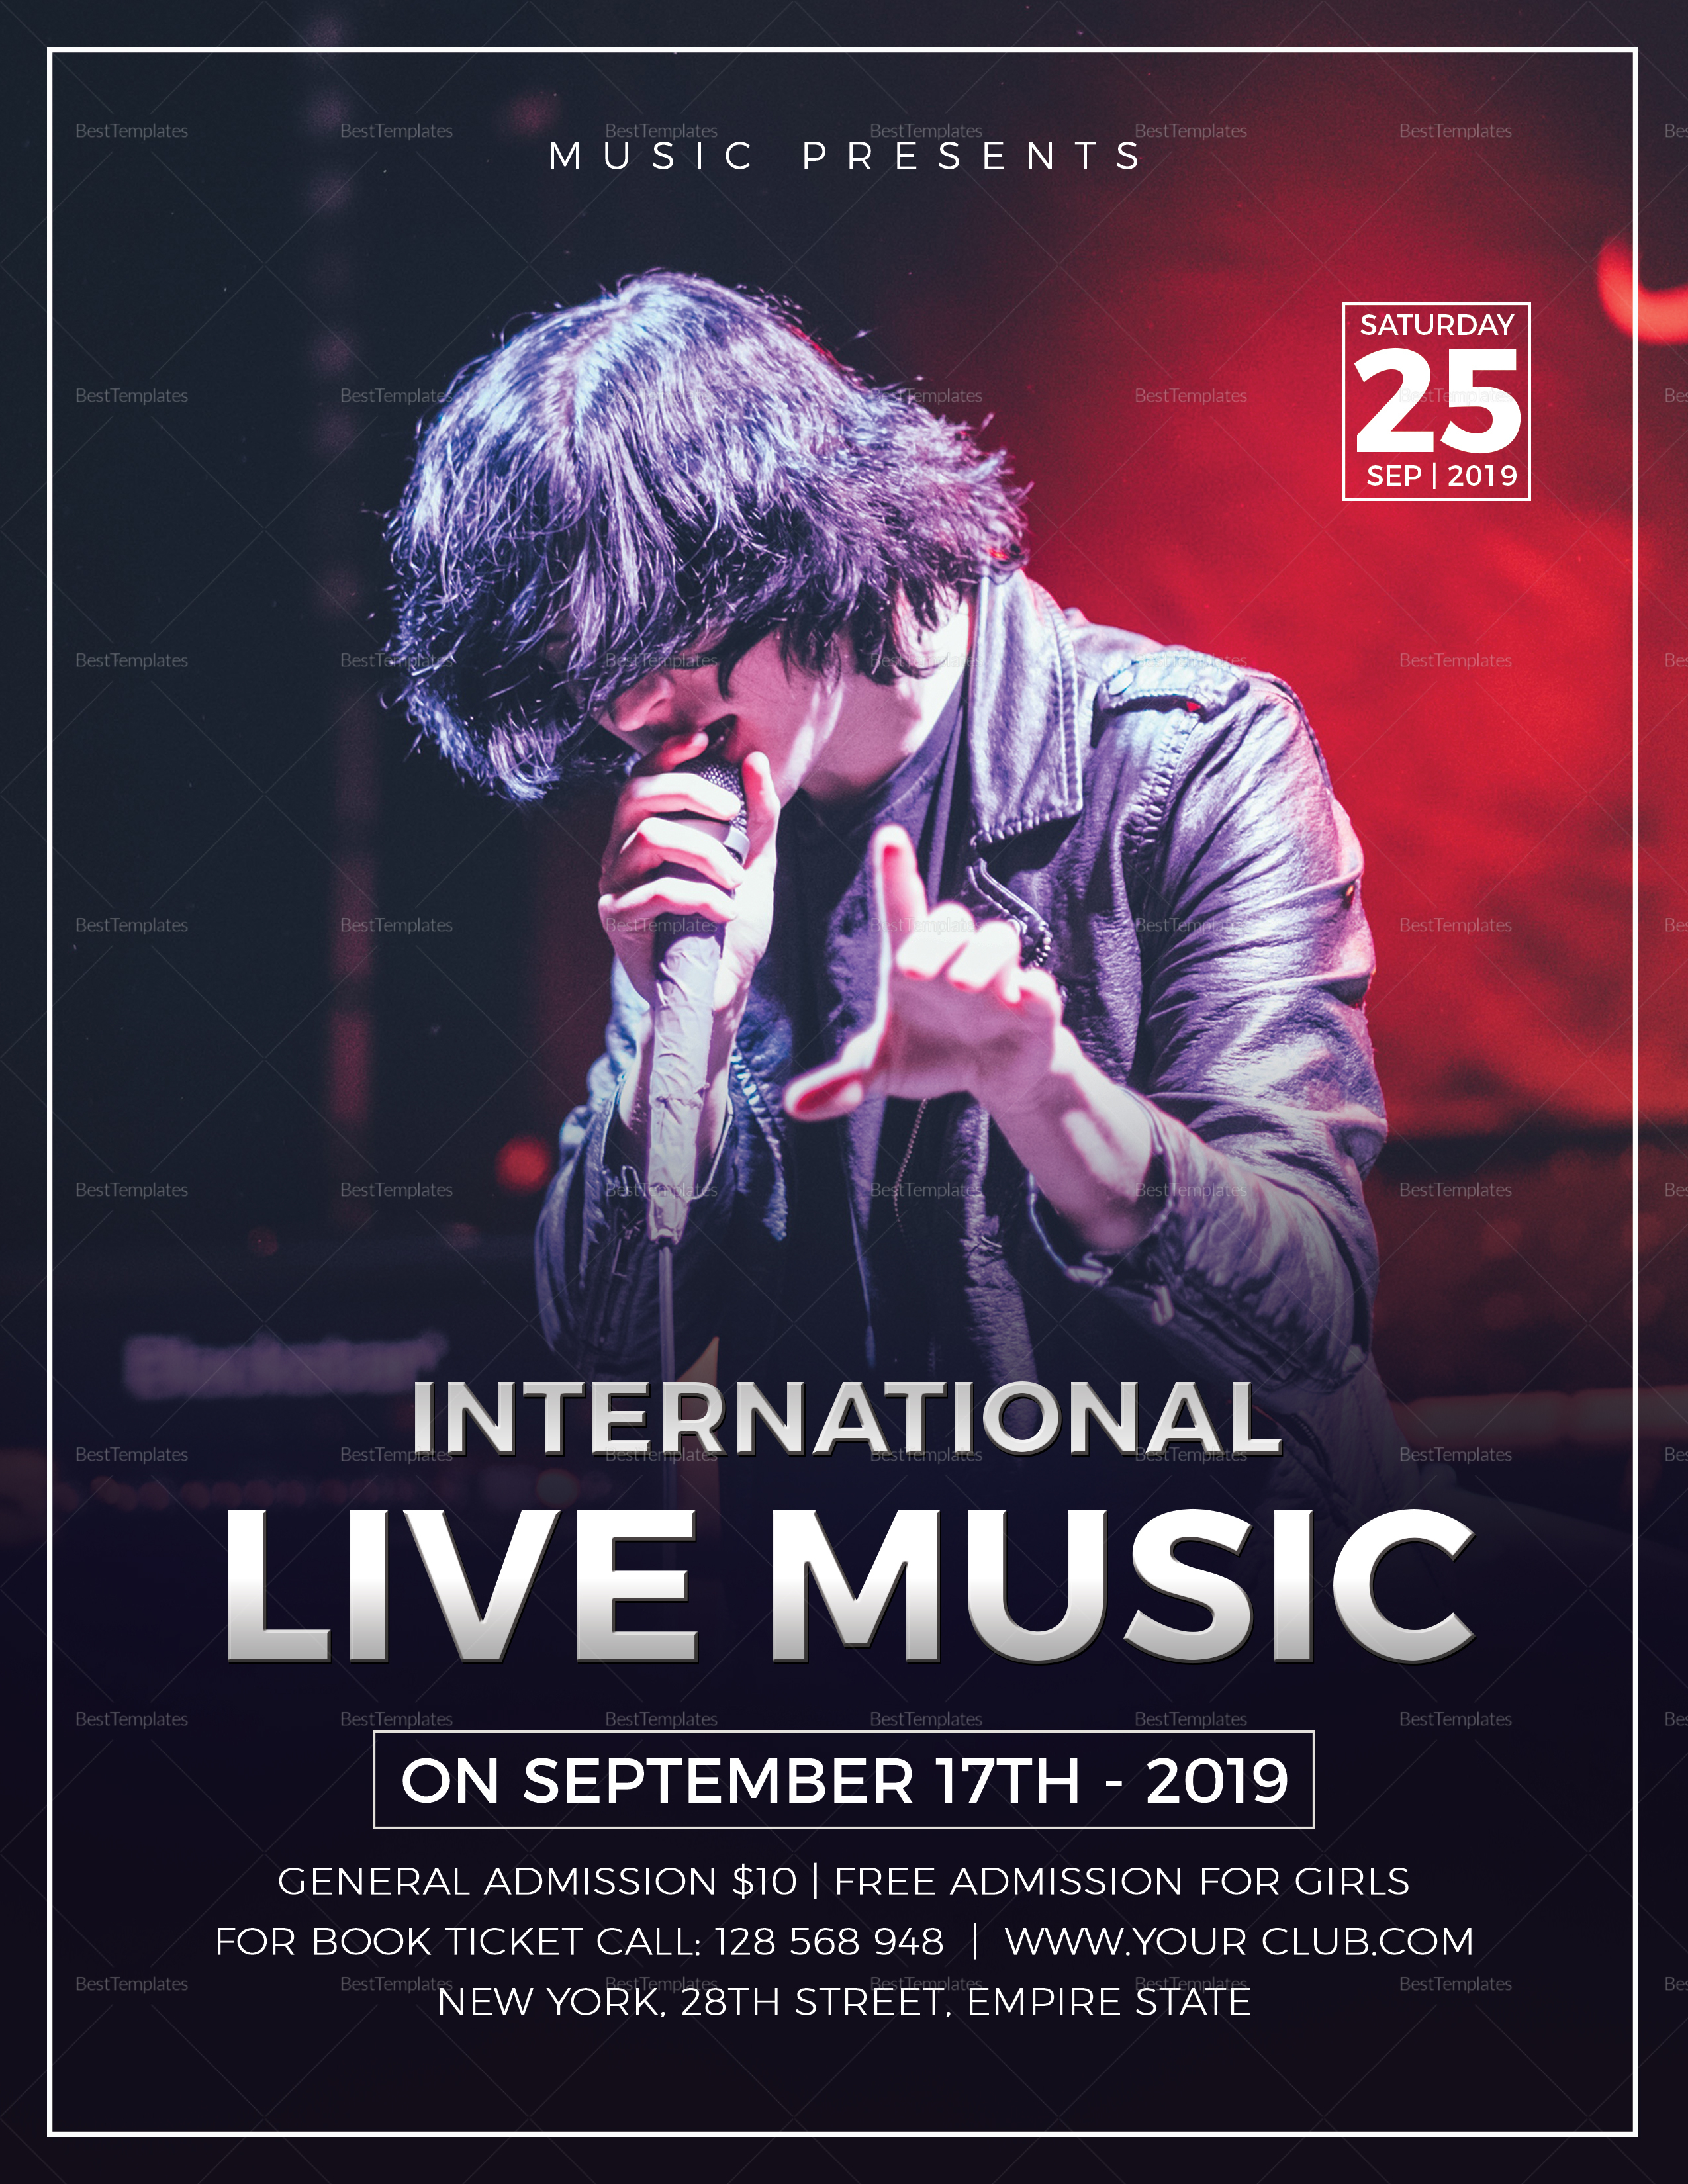 Live Music Concert Flyer Design Template in Word, PSD ...